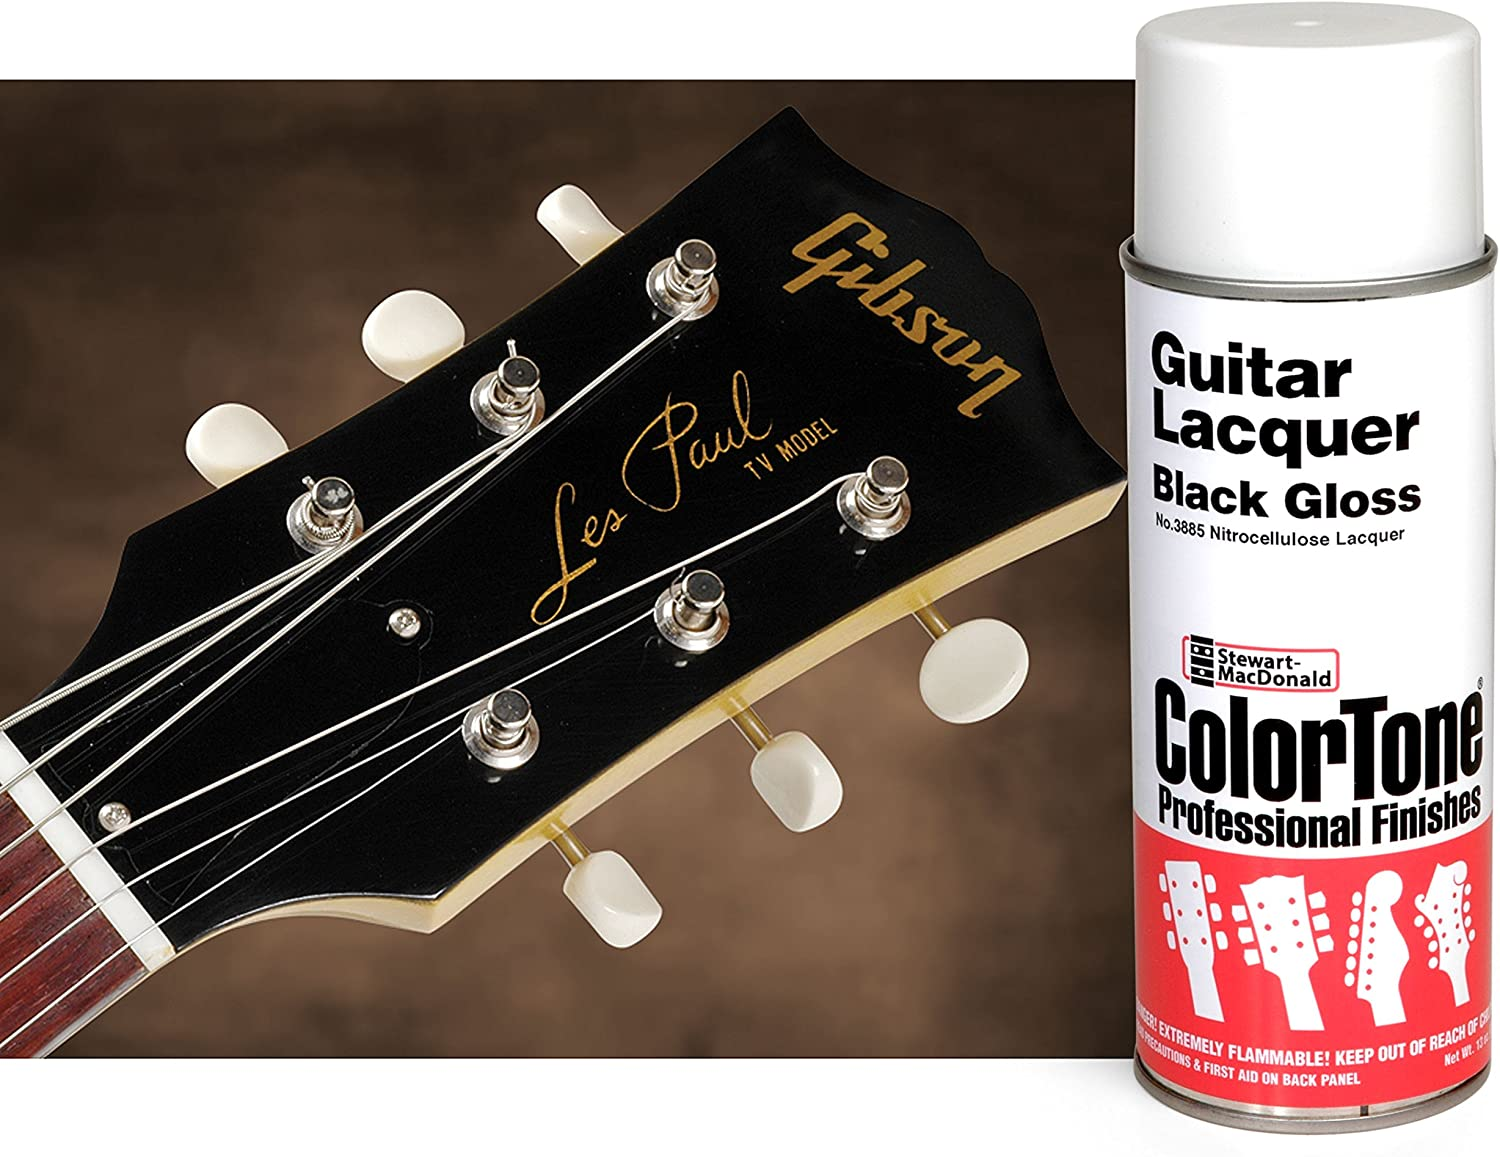 Colortone negro aerosol para guitarra: Amazon.es: Bricolaje y ...